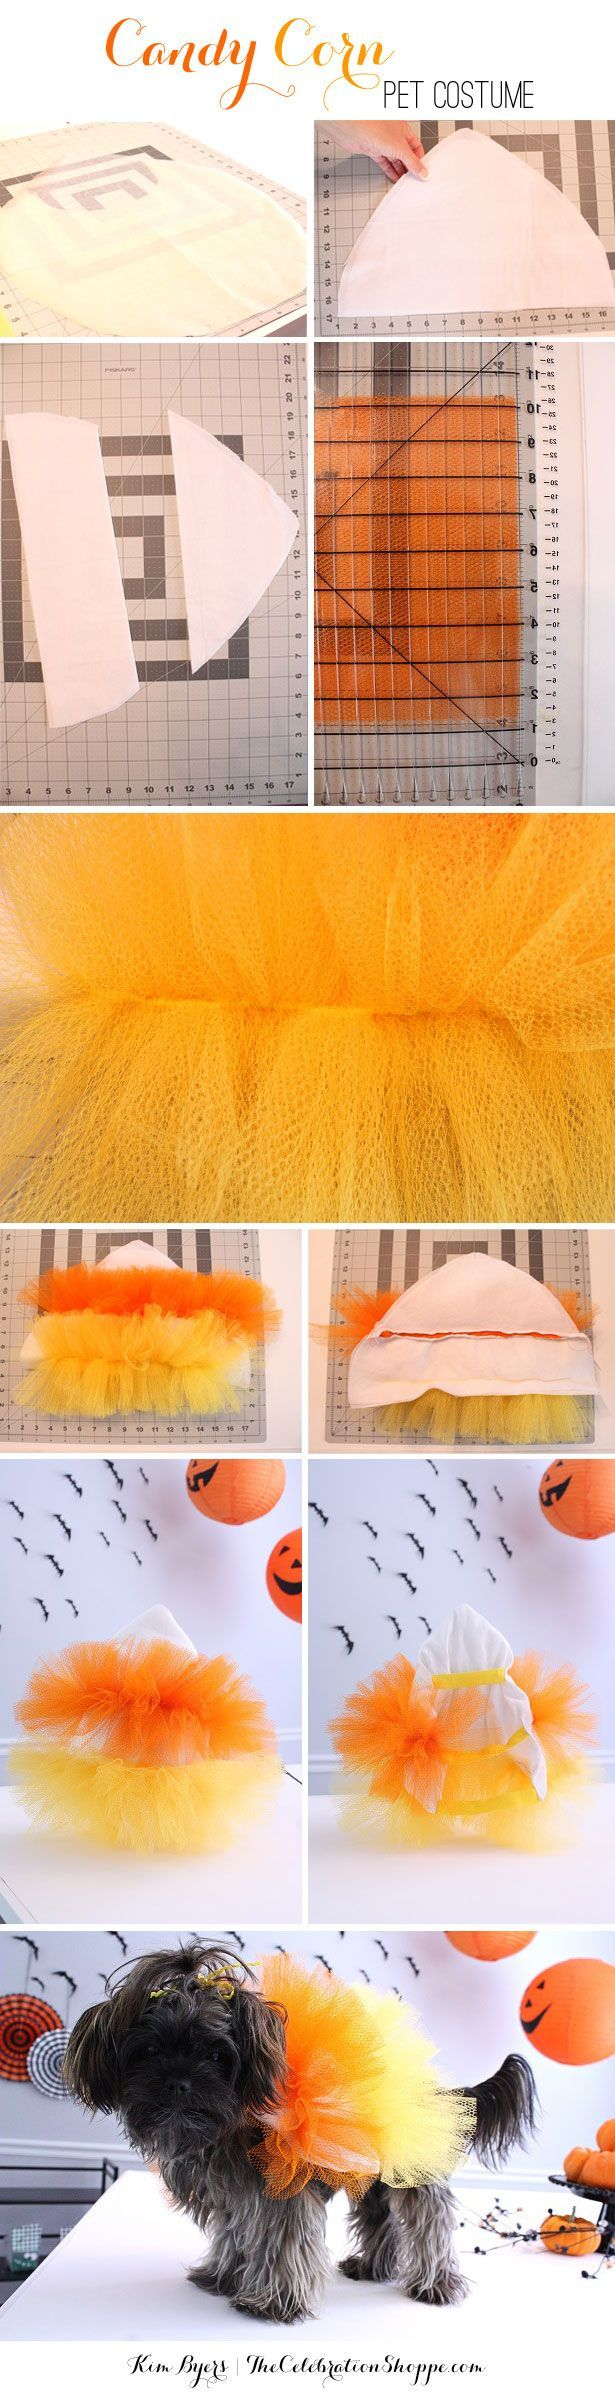 DIY Halloween Pet Costume – Make A Candy Corn Tutu